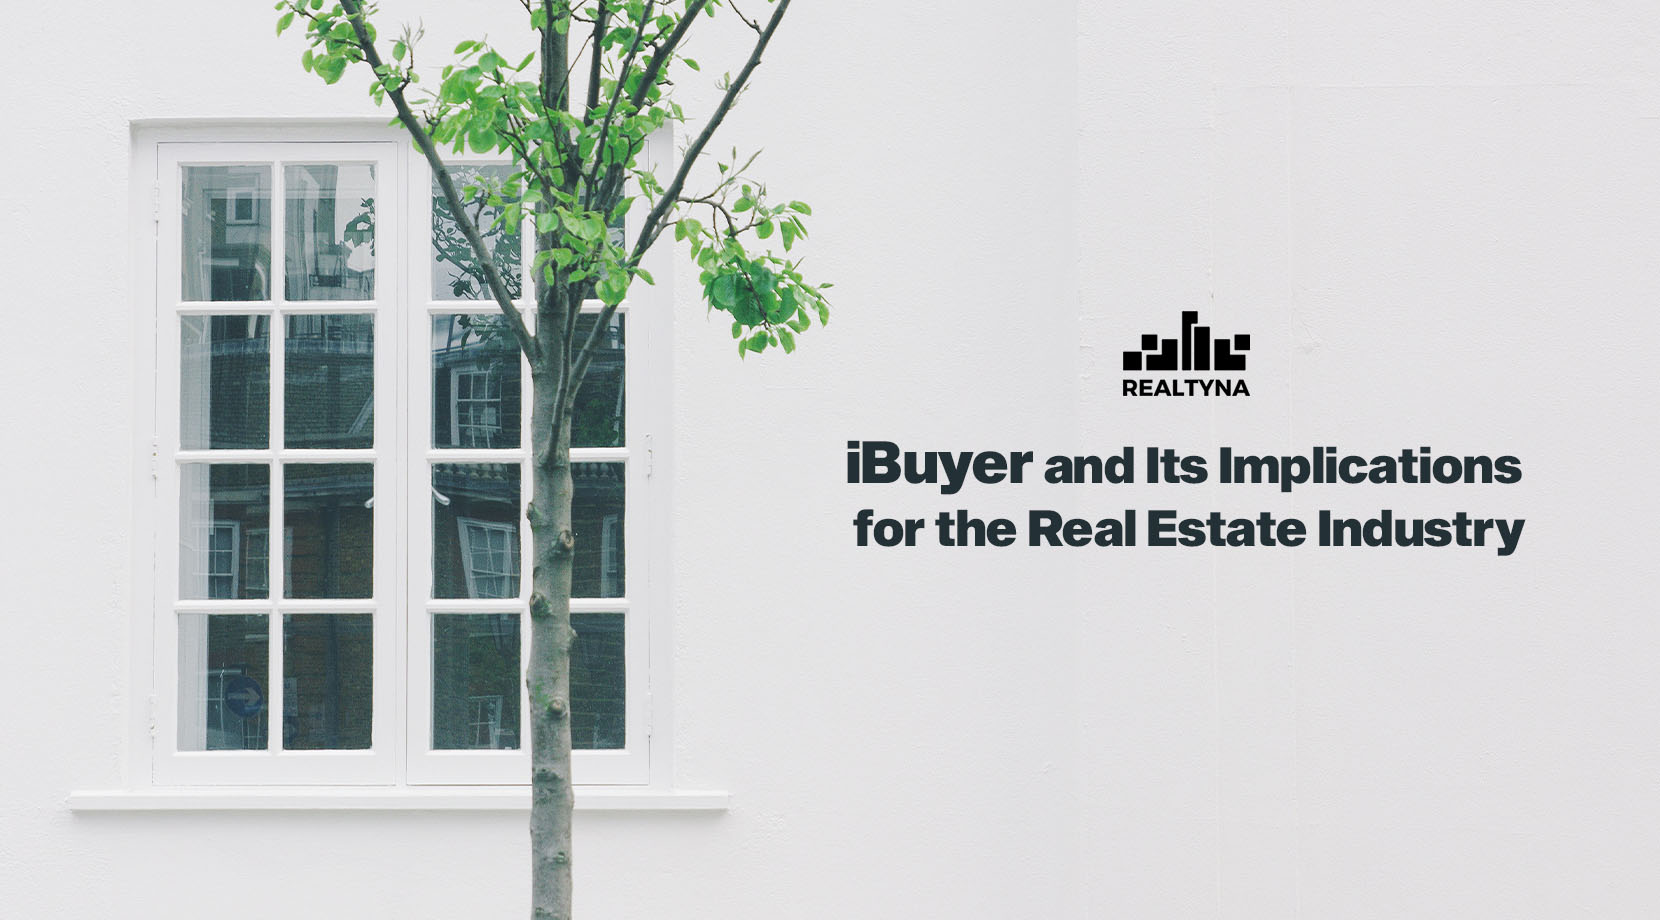 iBuyer in real estate